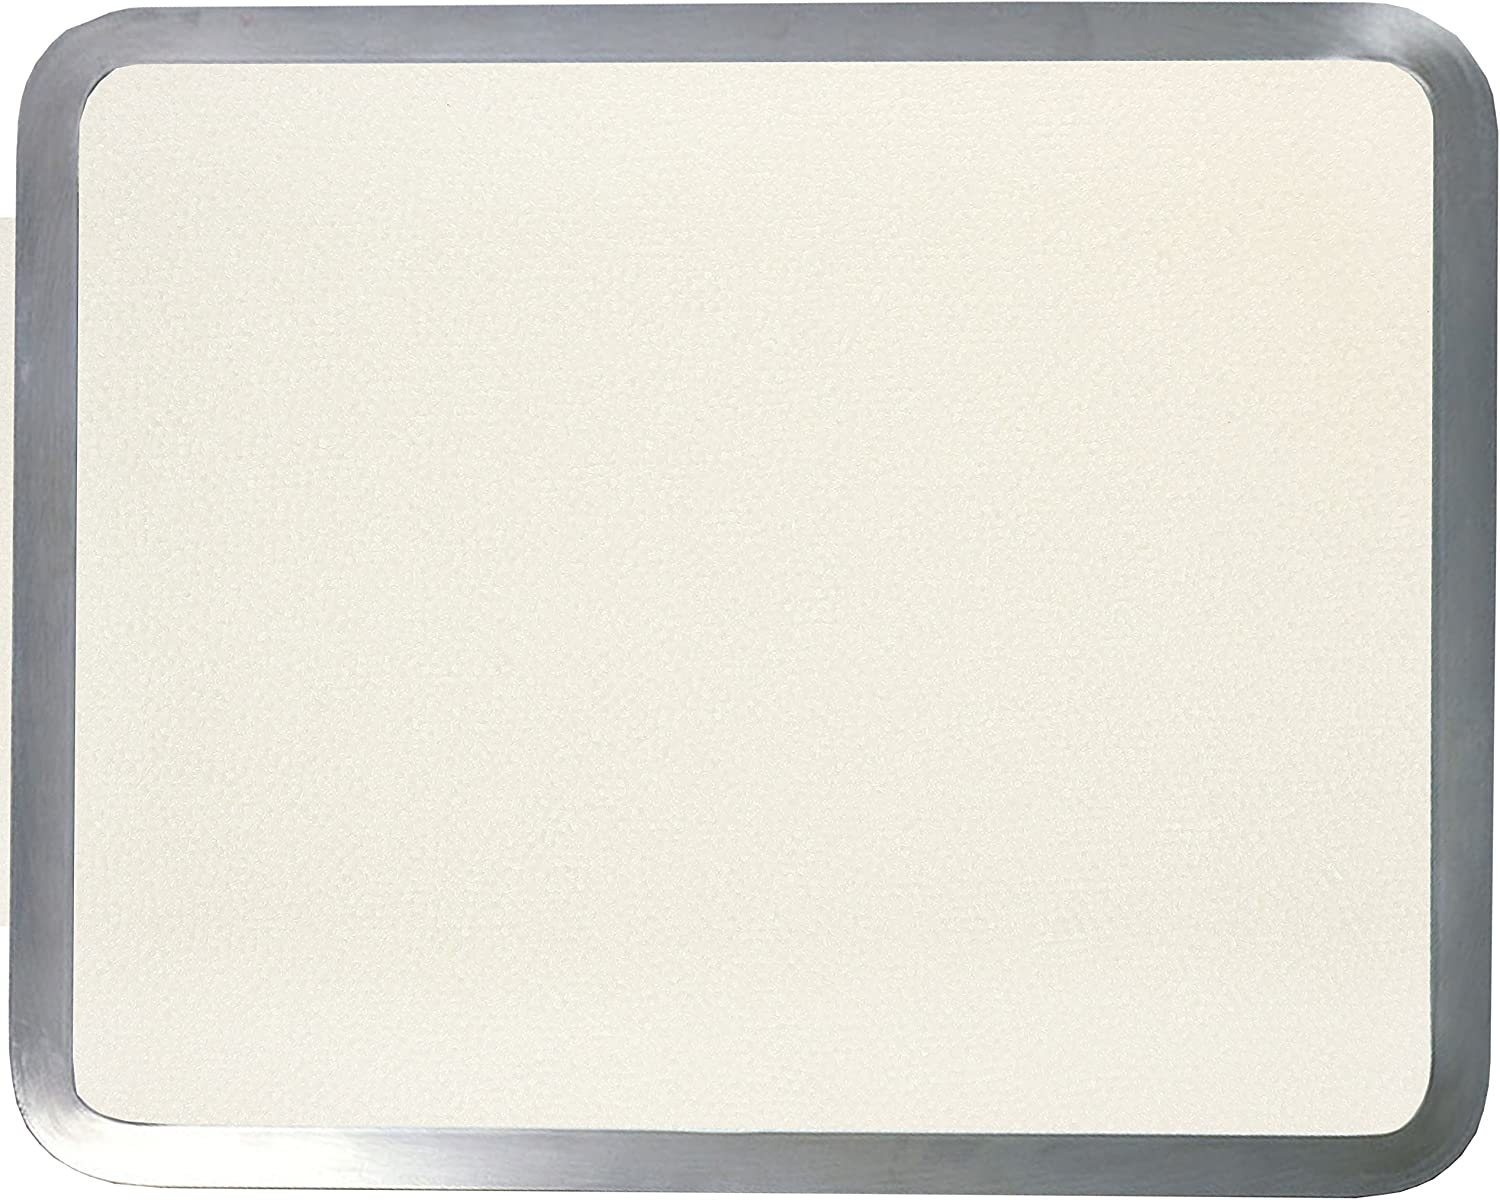 1S41620ALS Vance 16 X 20 inch Almond Stainless Steel Frame for Built-in Surface Saver Cutting Board